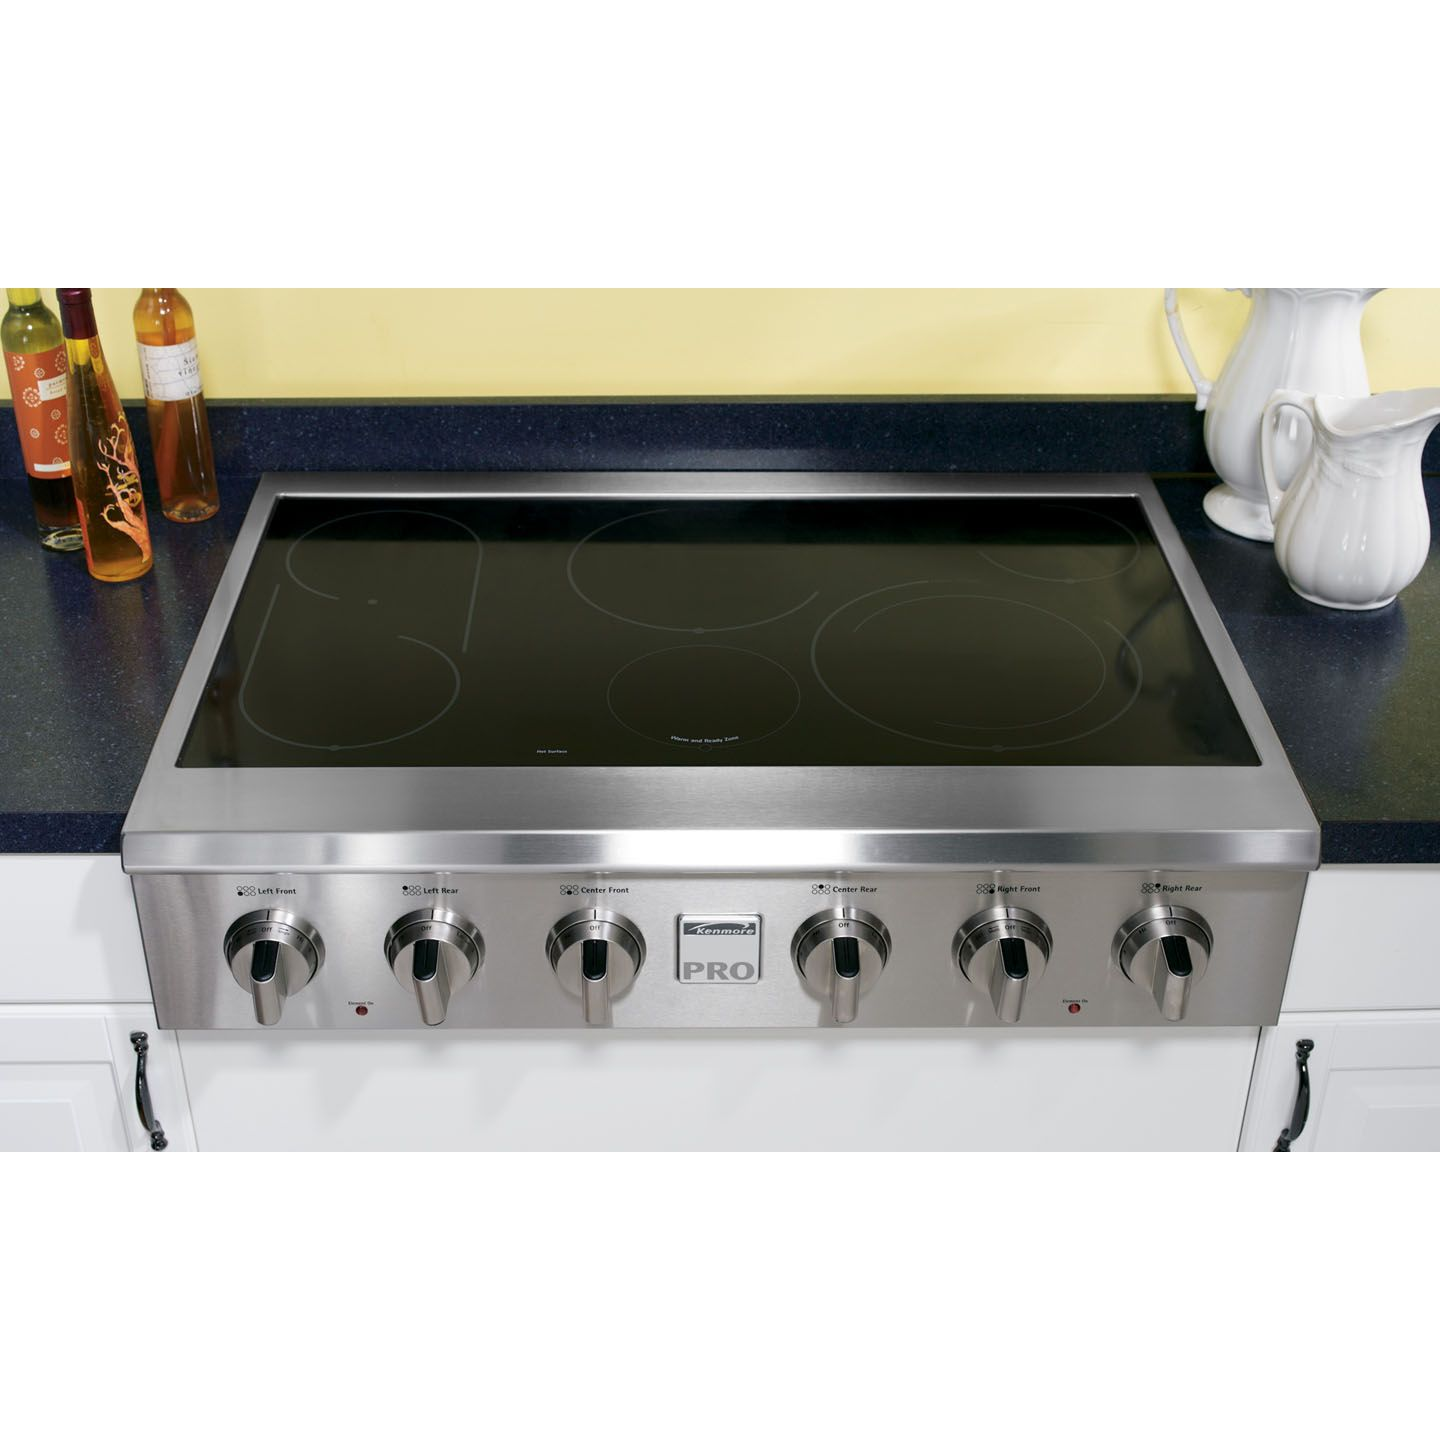 Cooktop Gas Stoves Spin Prod 174876201 Hei333 Andwid333 Andop Sharpen1